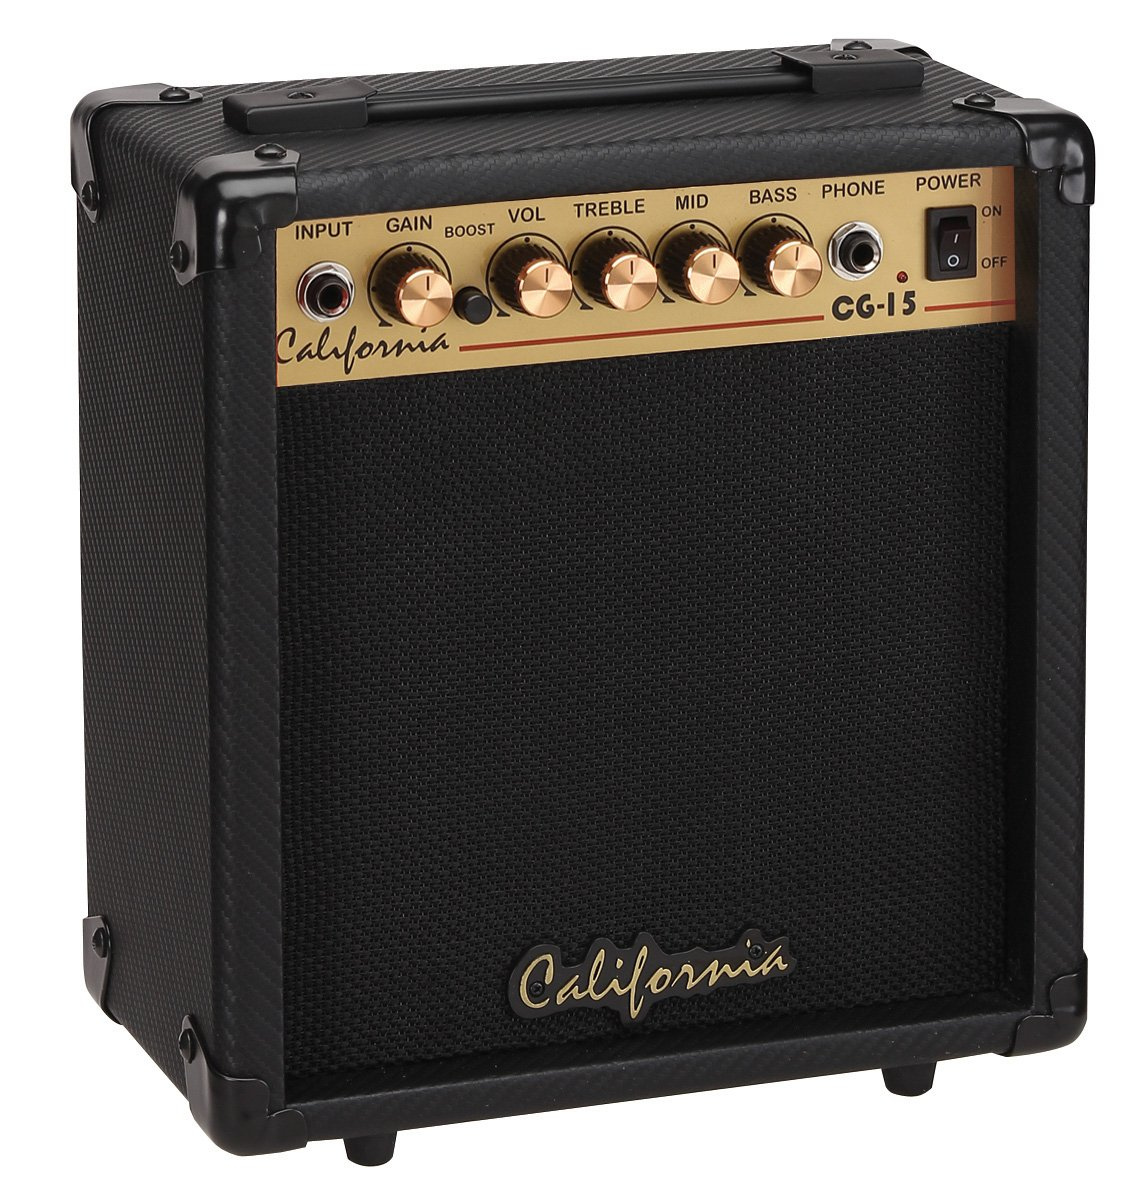 California Amps CG-15 Guitar Combo Amplifier by California Amps